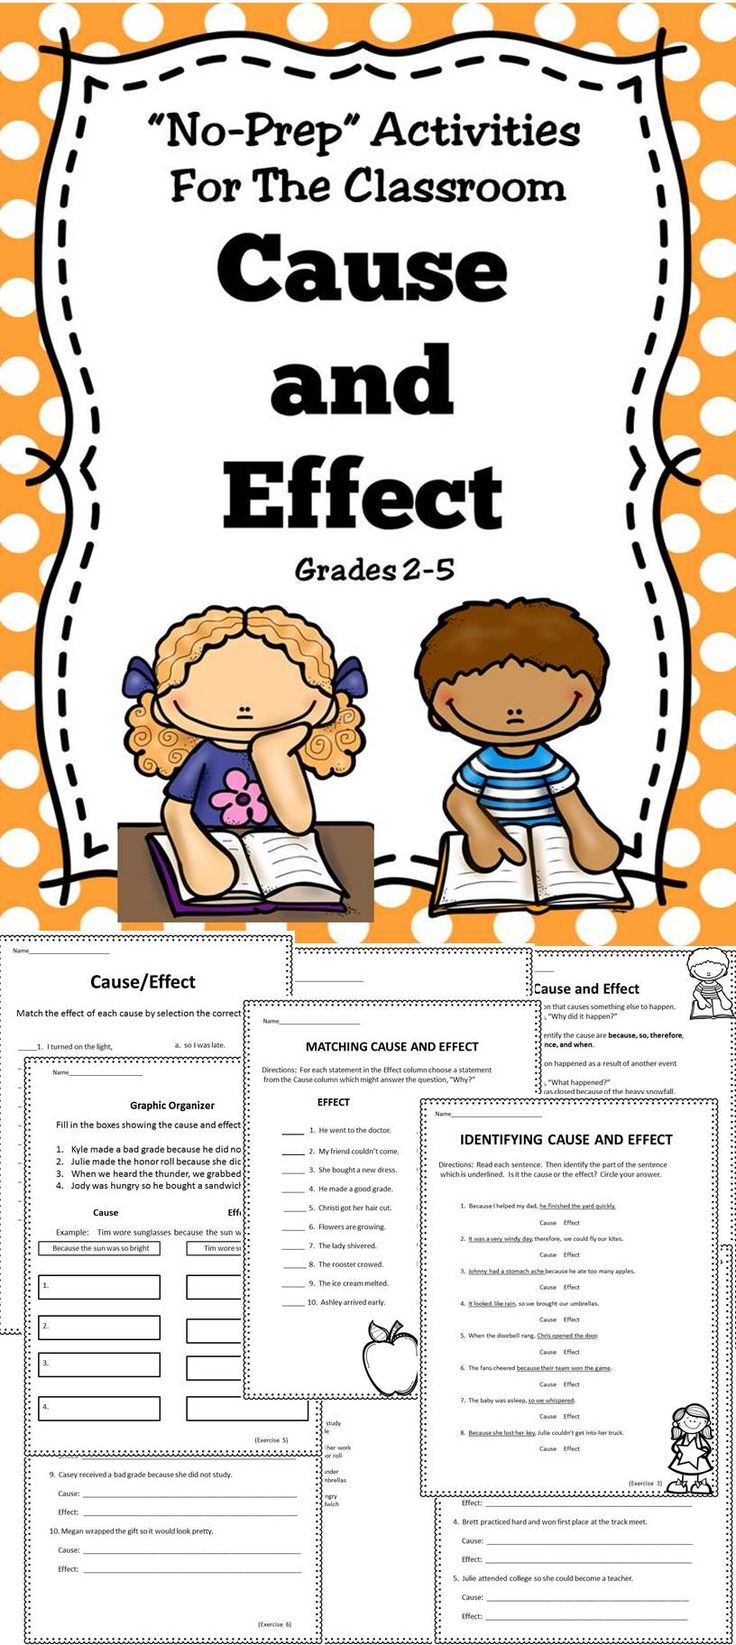 ideas about cause and effect activities cause a cause and effect activity book for the classroom